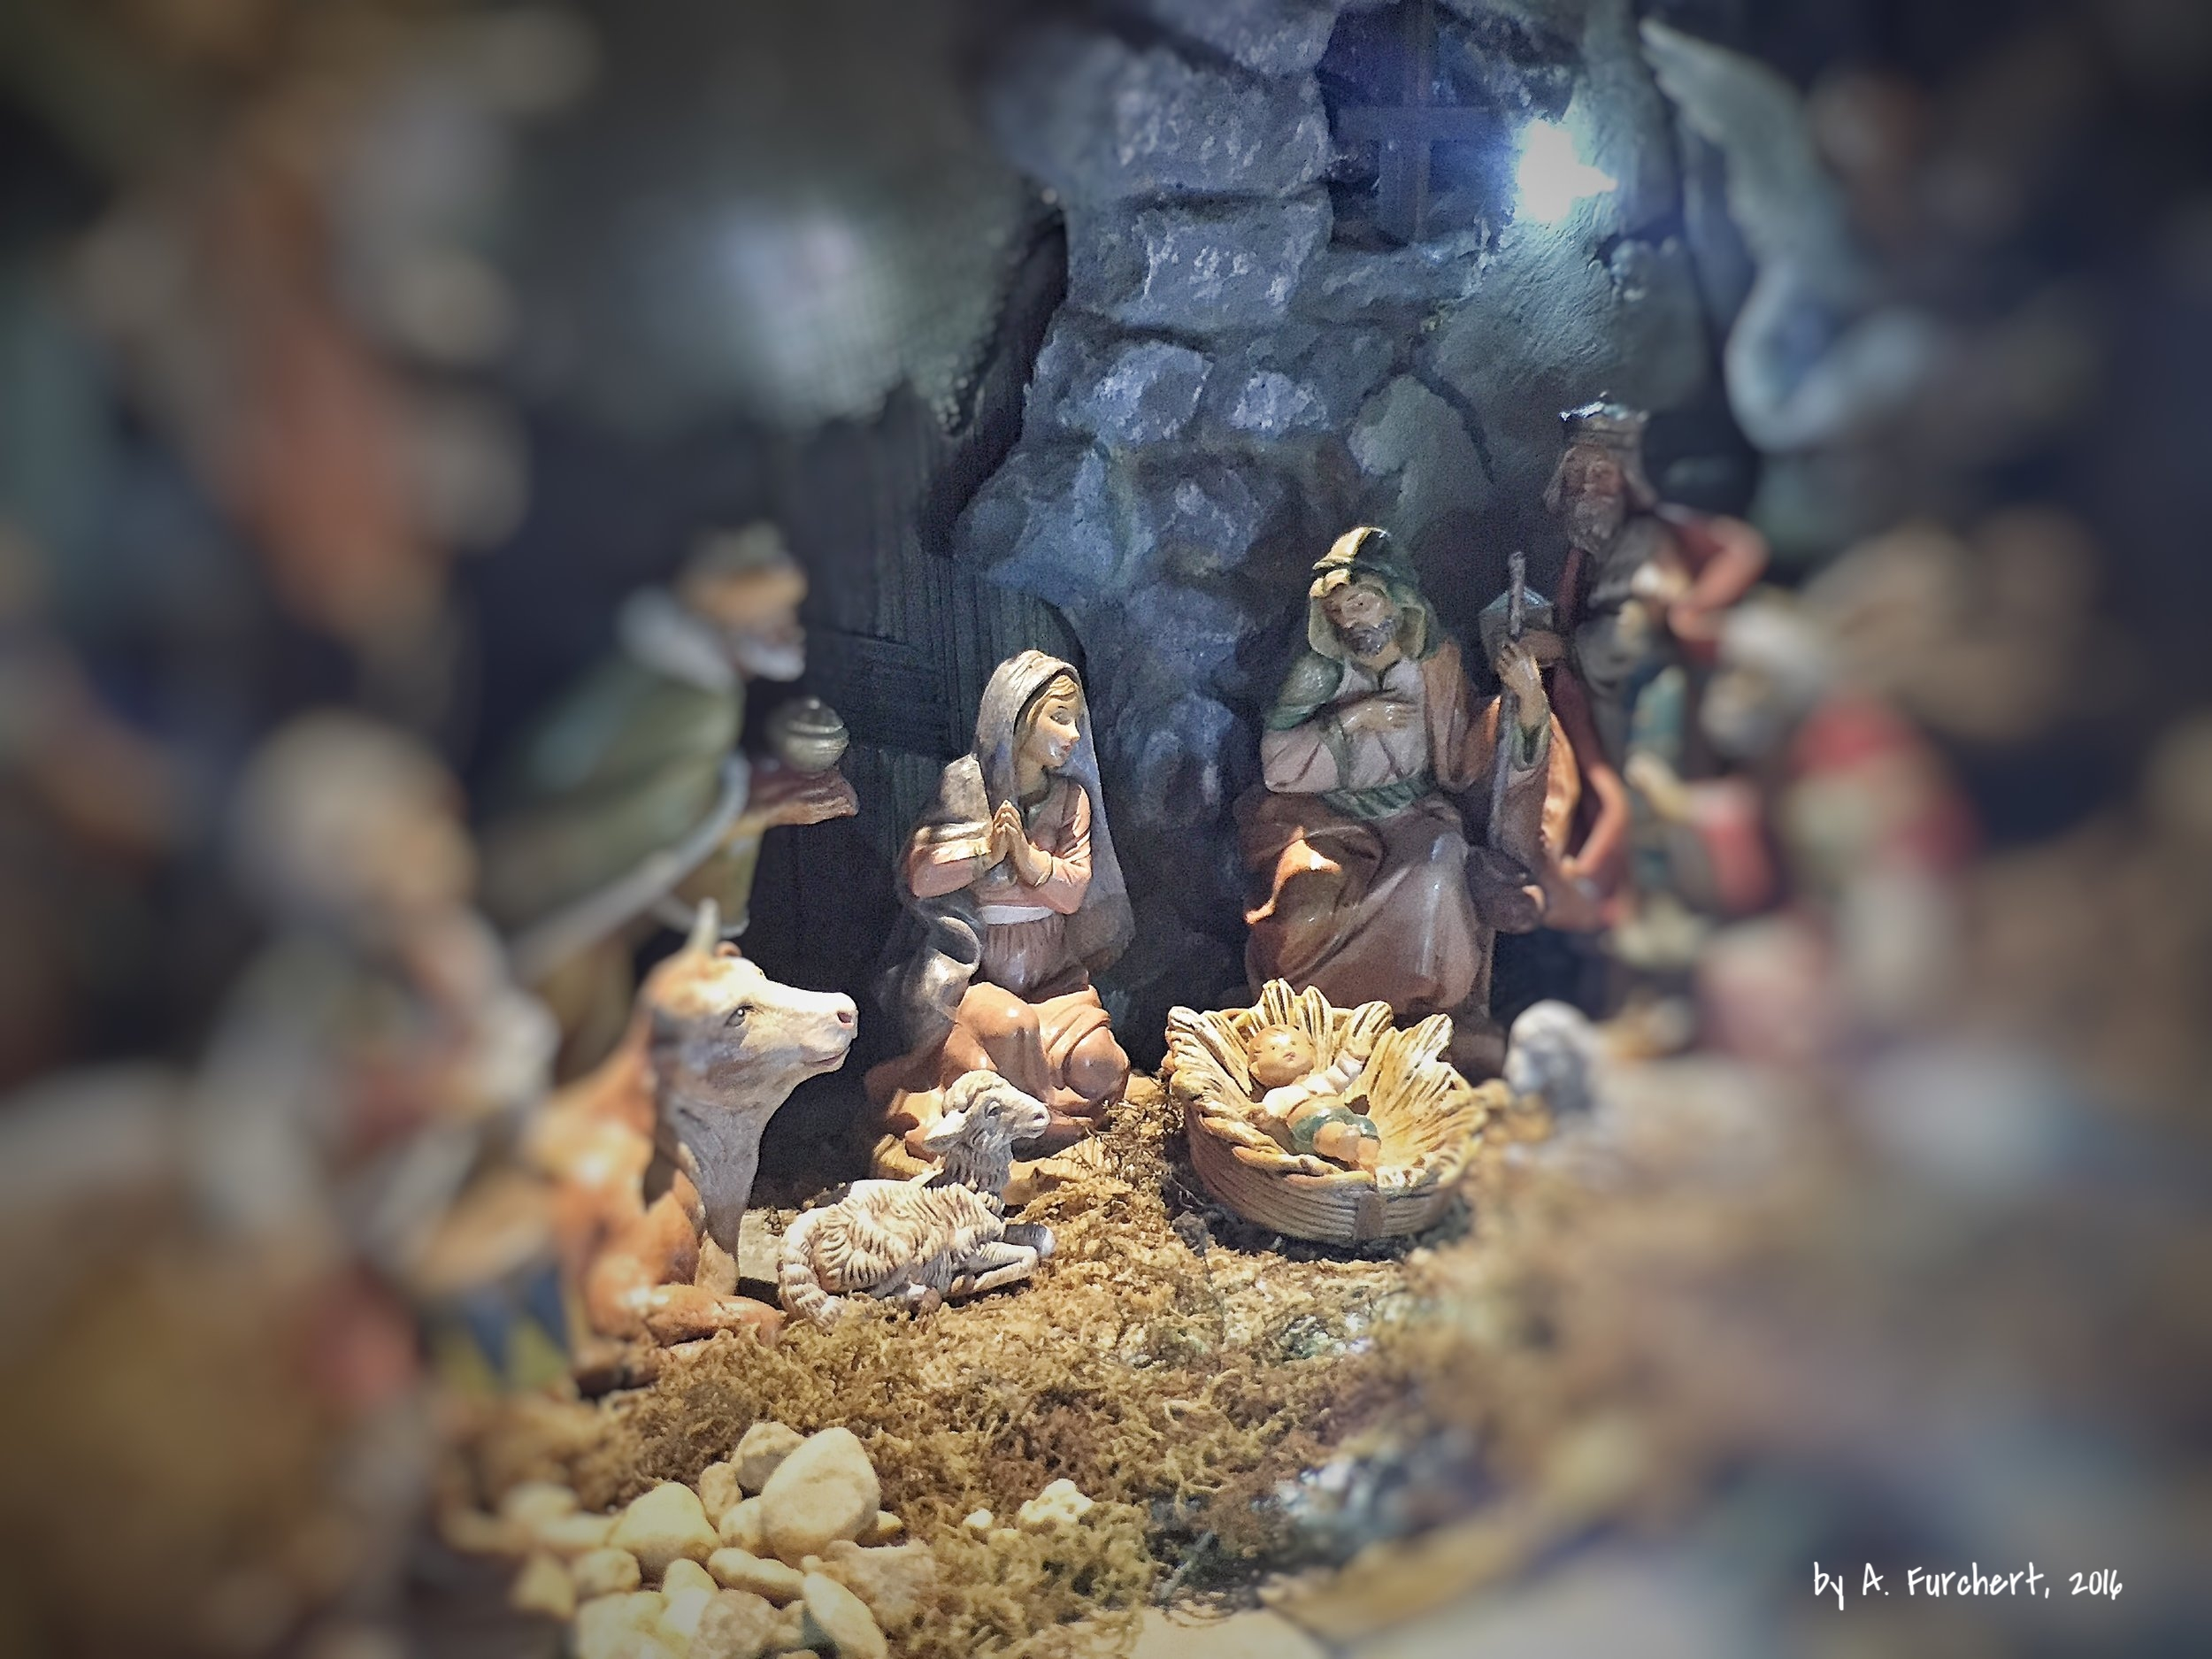 Peering into the nativity scene with child like eyes. Come and see.